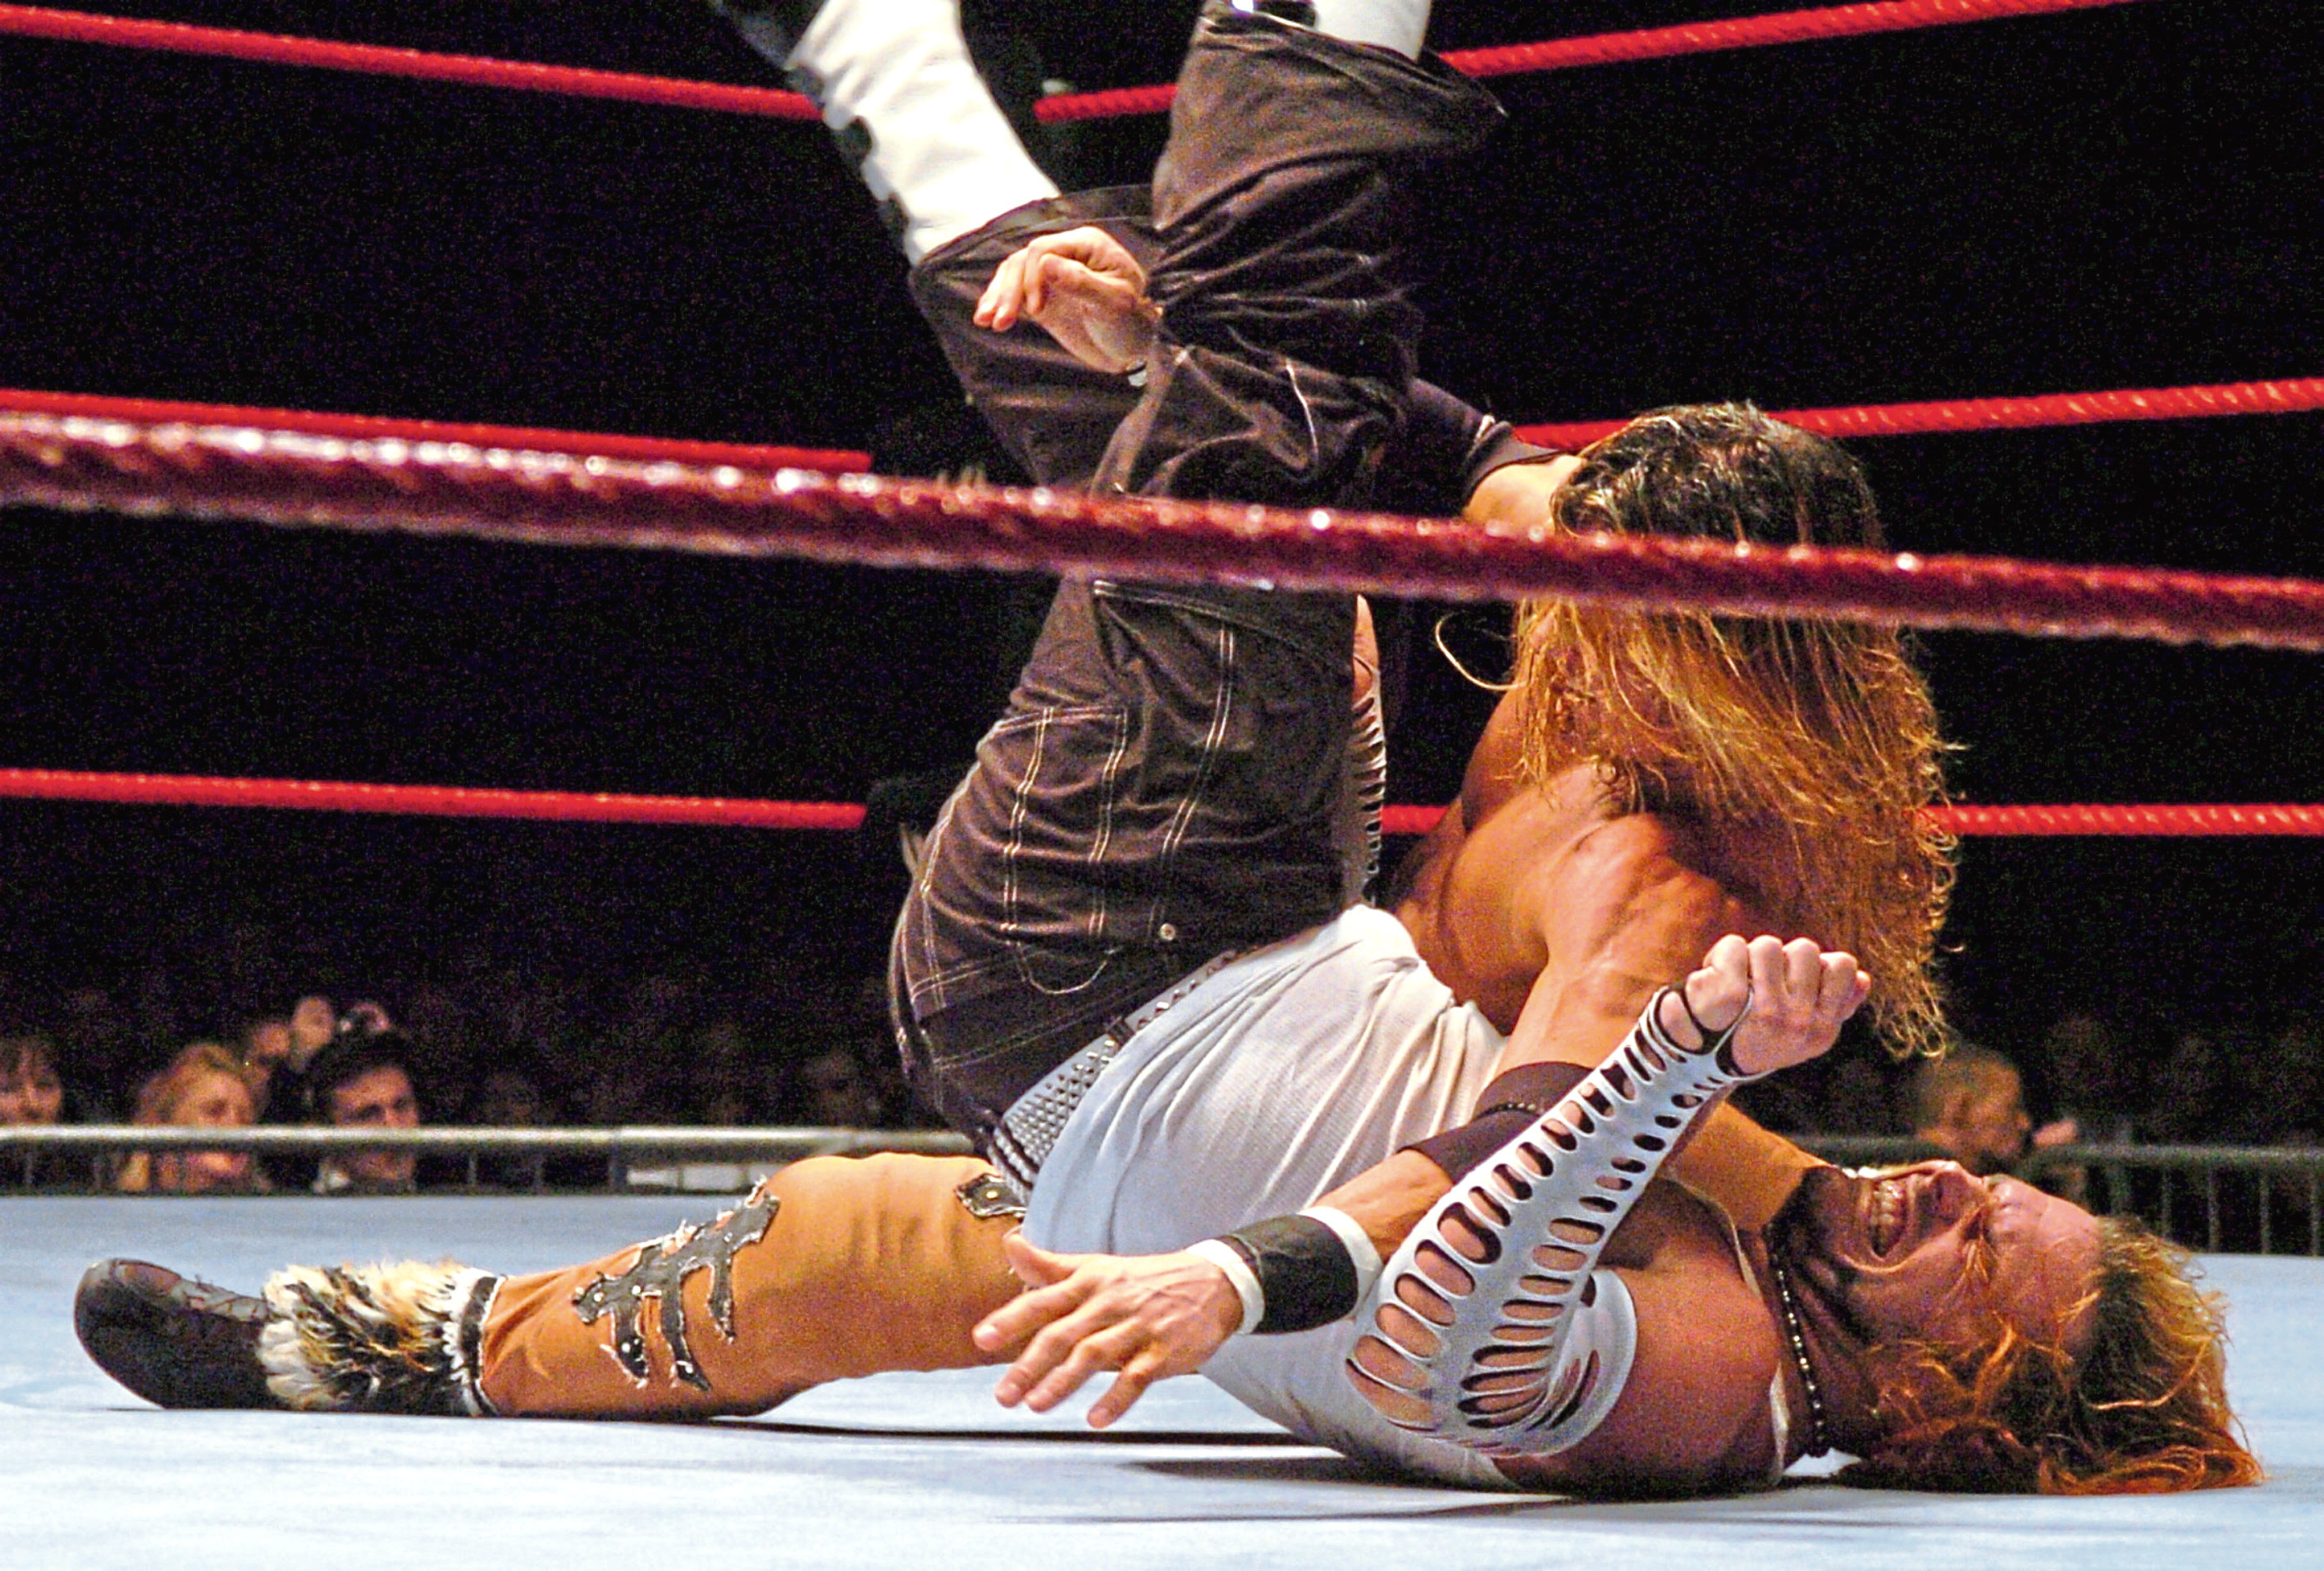 2006: WWE Wrestling at the AECC – Jeff Hardy, front, Johnny Nitro, back